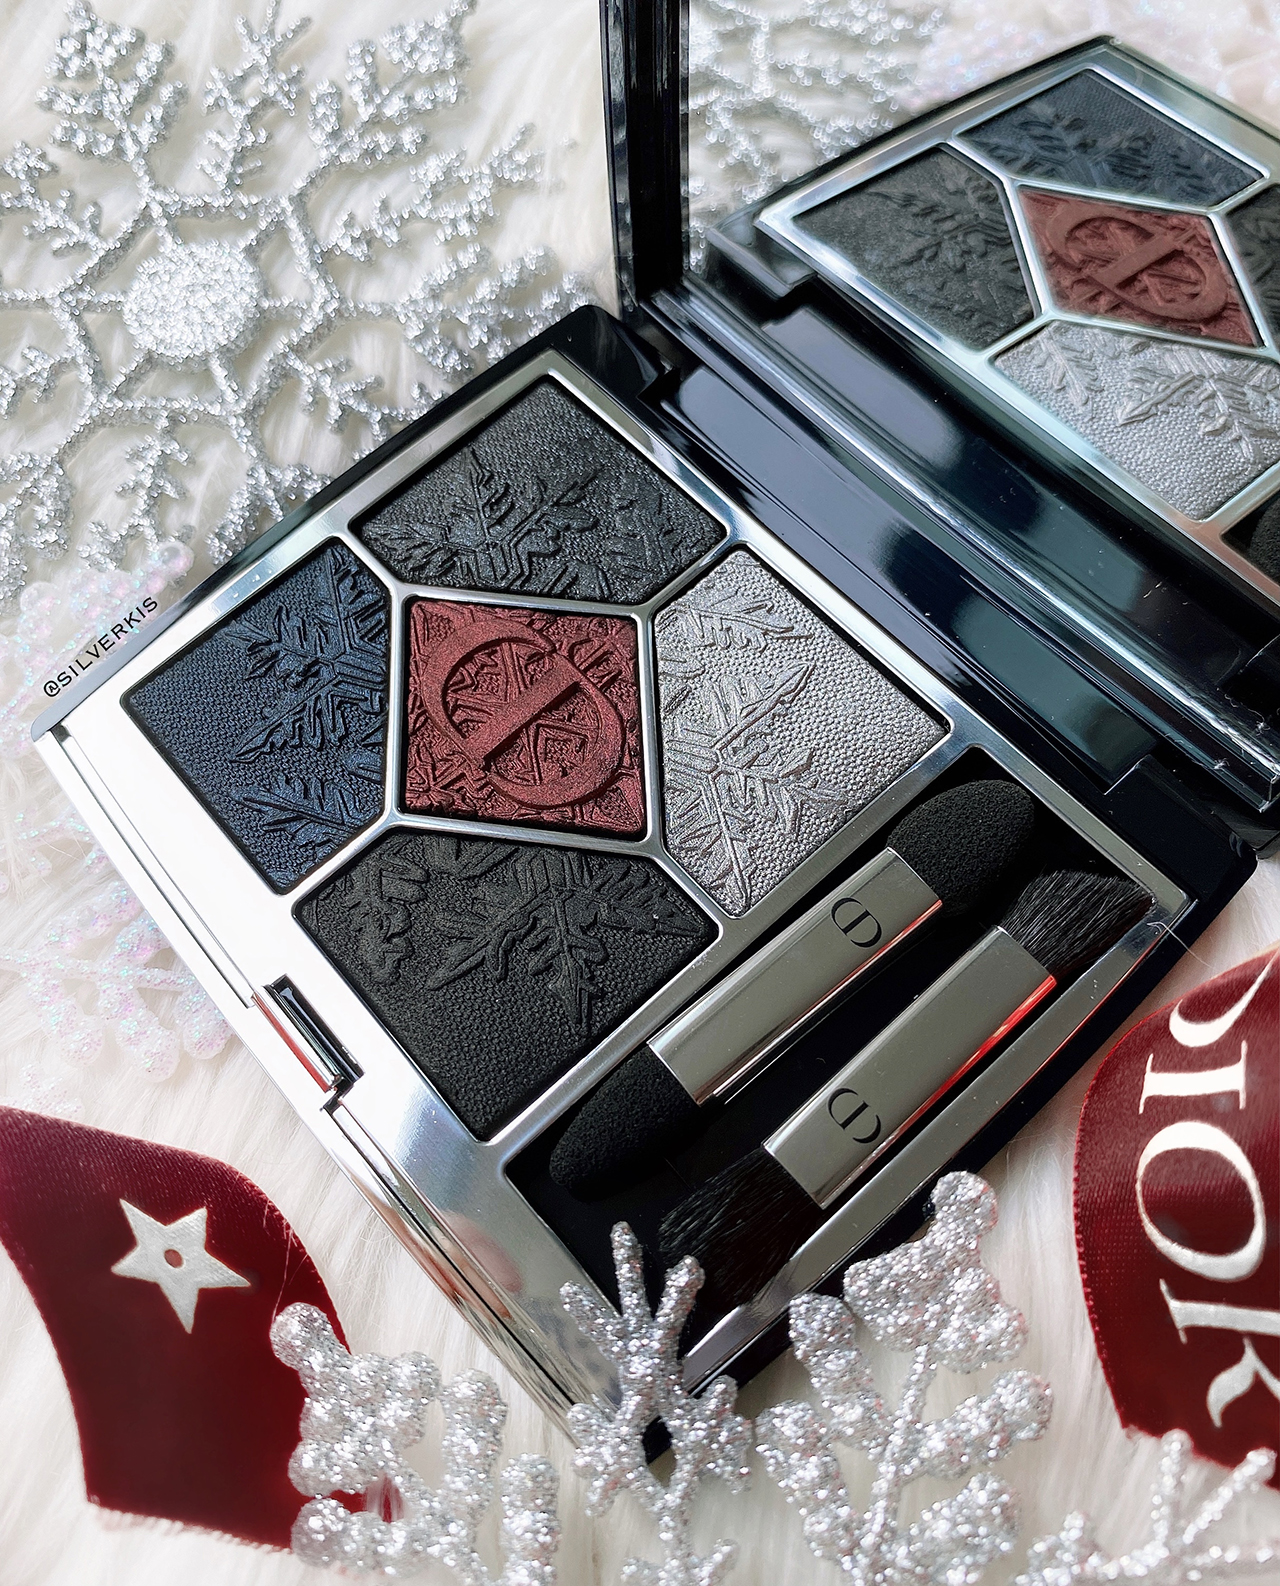 Dior 5 Couleurs Couture Black Night Eyeshadow Palette for Holiday 2020